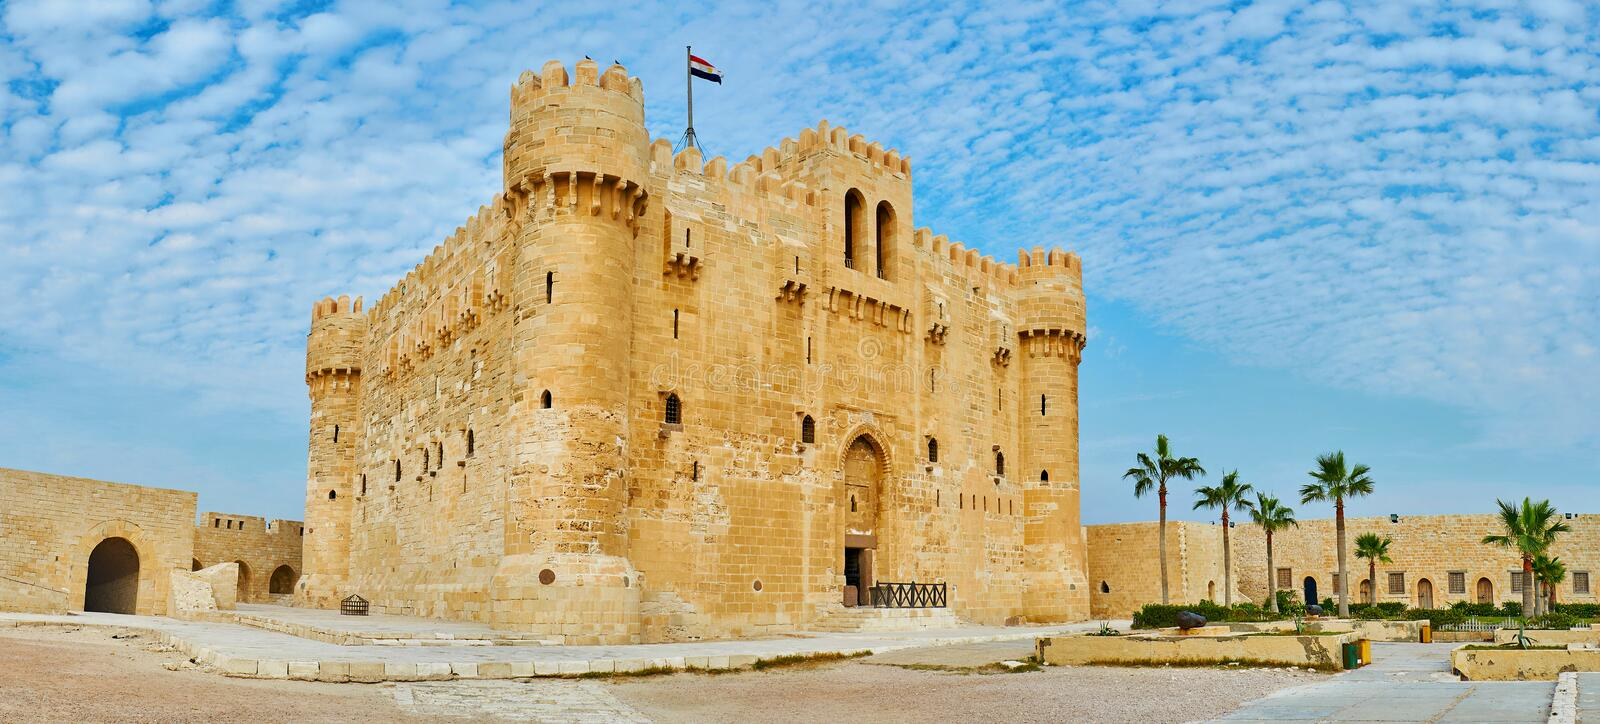 Discover medieval citadel of Alexandria, Egypt. The Qaitbay Fort is the famous historic landmark and fine example of medieval architecture, Alexandria, Egypt stock images